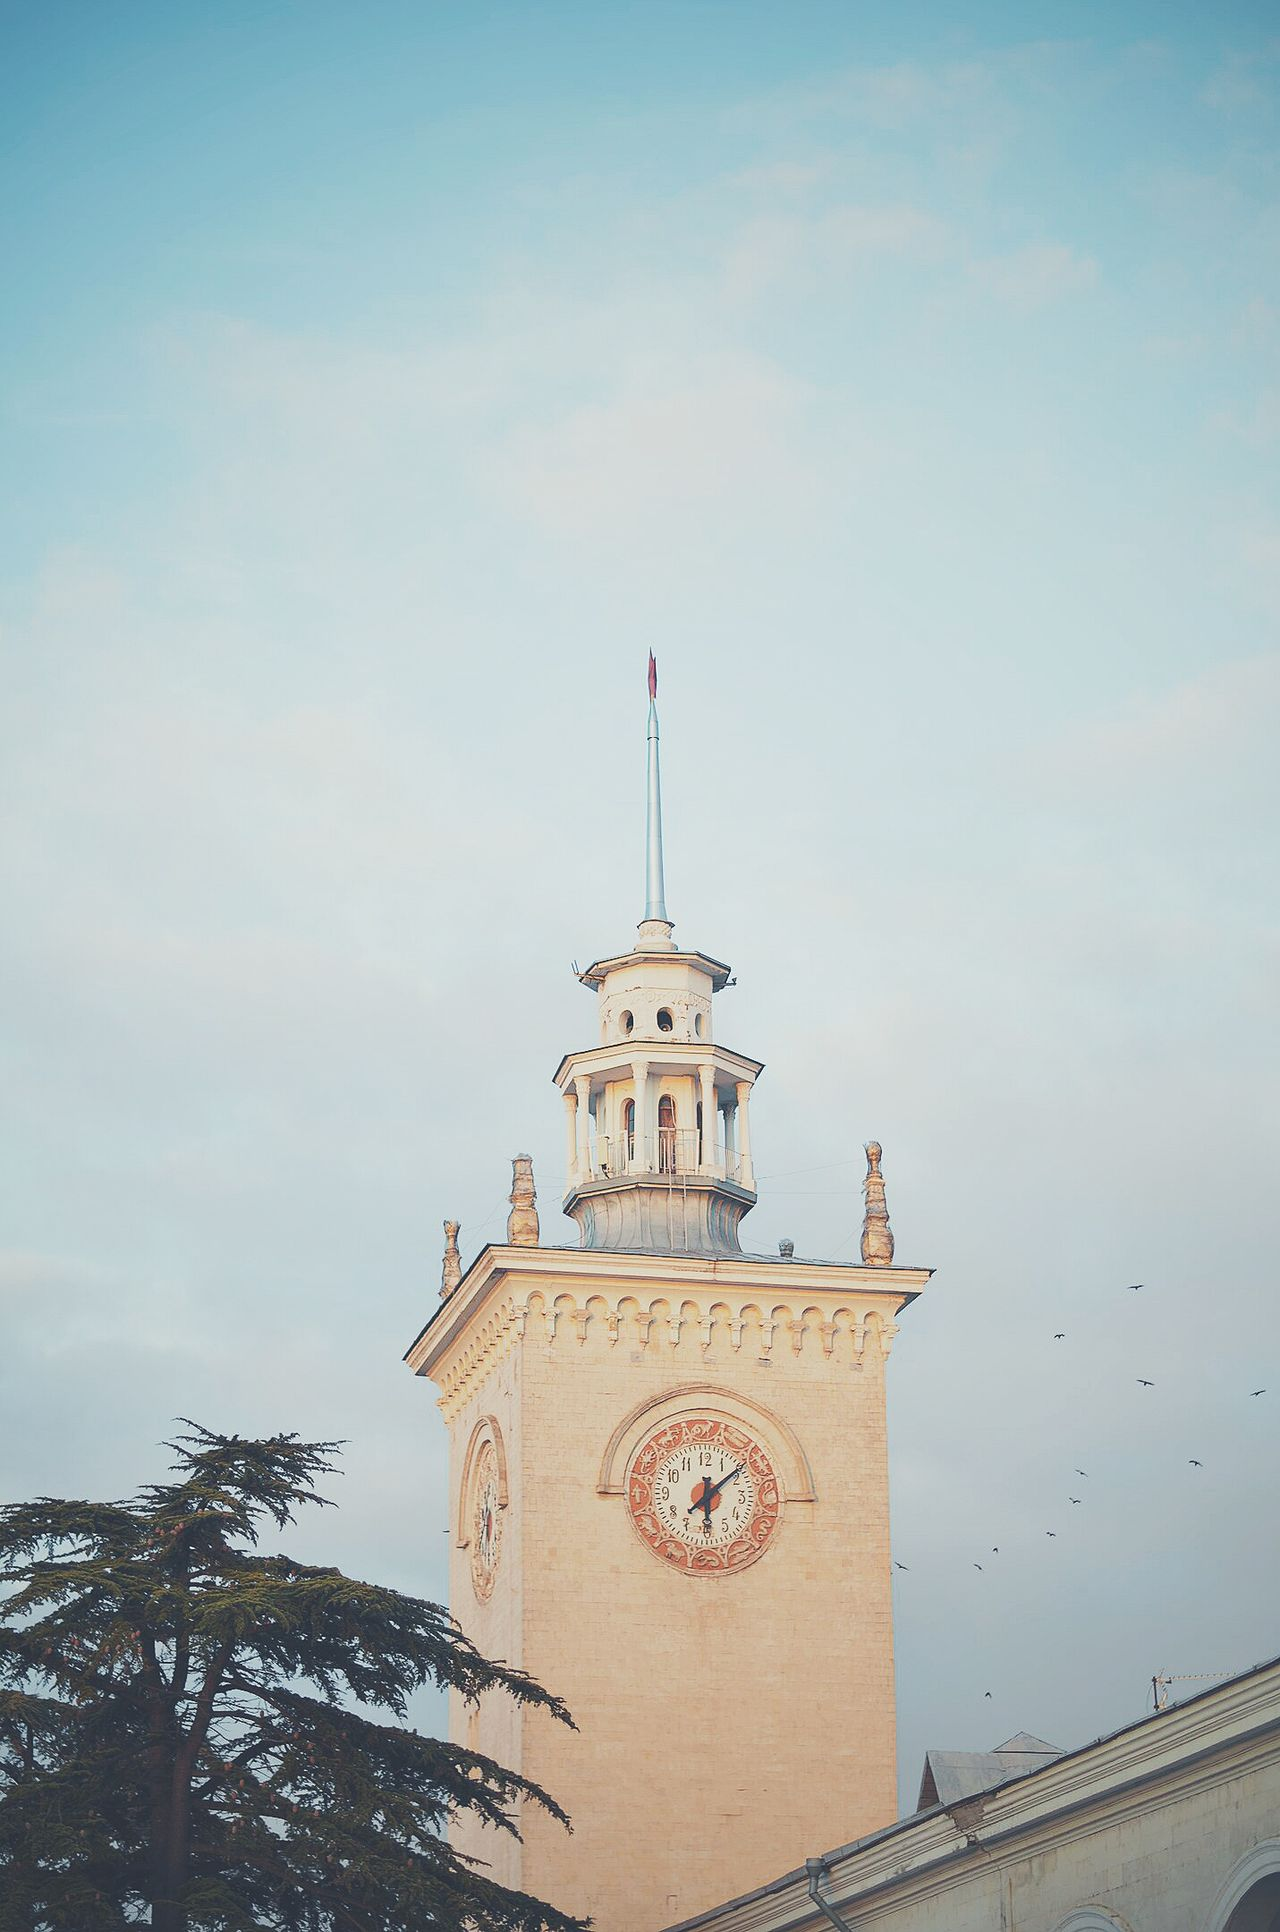 Sky Architecture Place Of Worship Tower No People City Religion Travel Destinations Day Outdoors Dome Business Finance And Industry Building Exterior Snowing Clock Face Clock Representing Baroque Style EyeEmNewHere EyeAmNewHere Cloud - Sky Best EyeEm Shot Walking Around